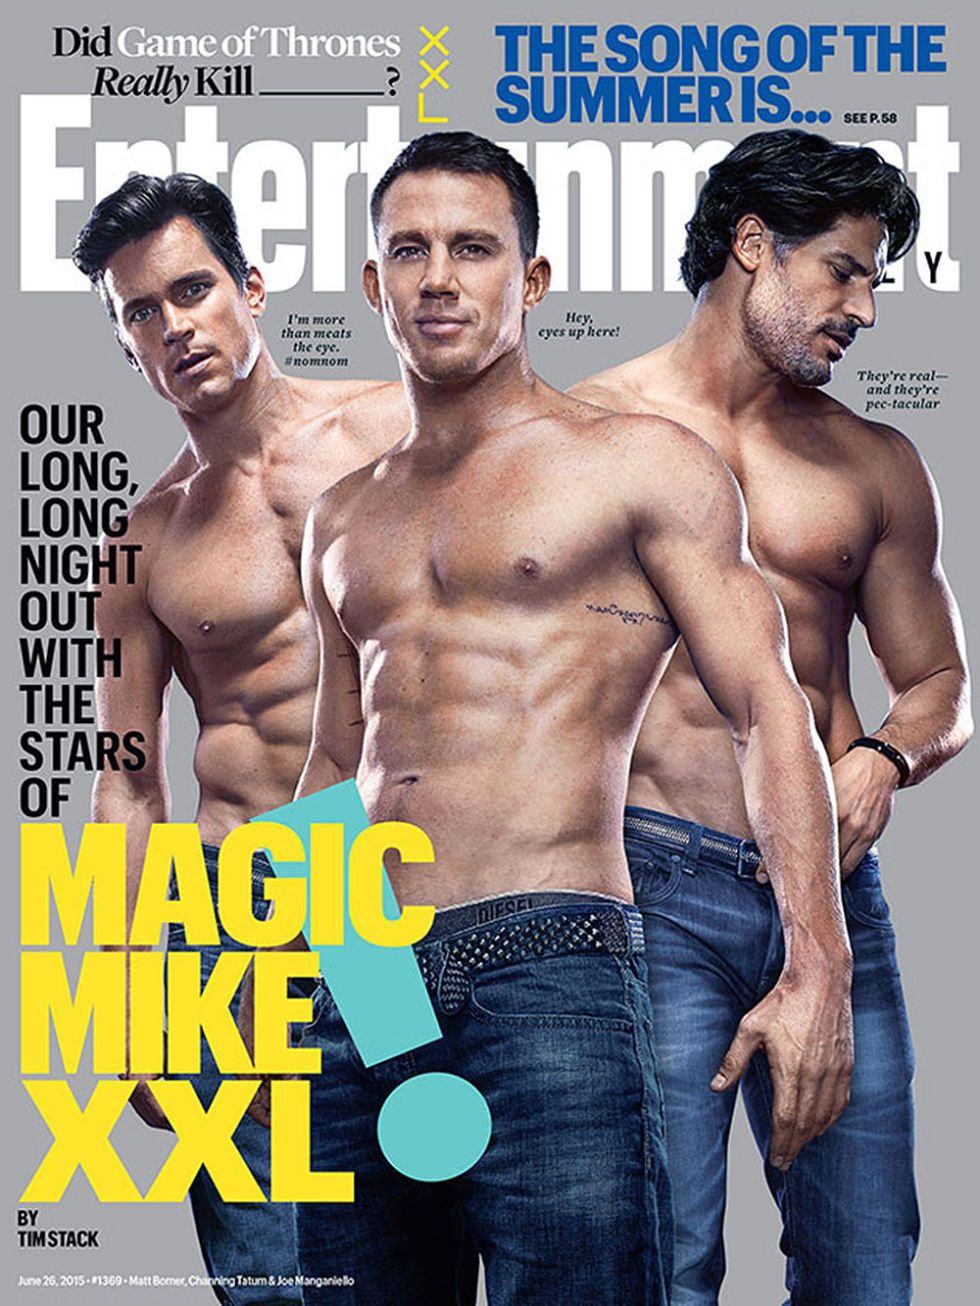 Magic mike xxl giveaways